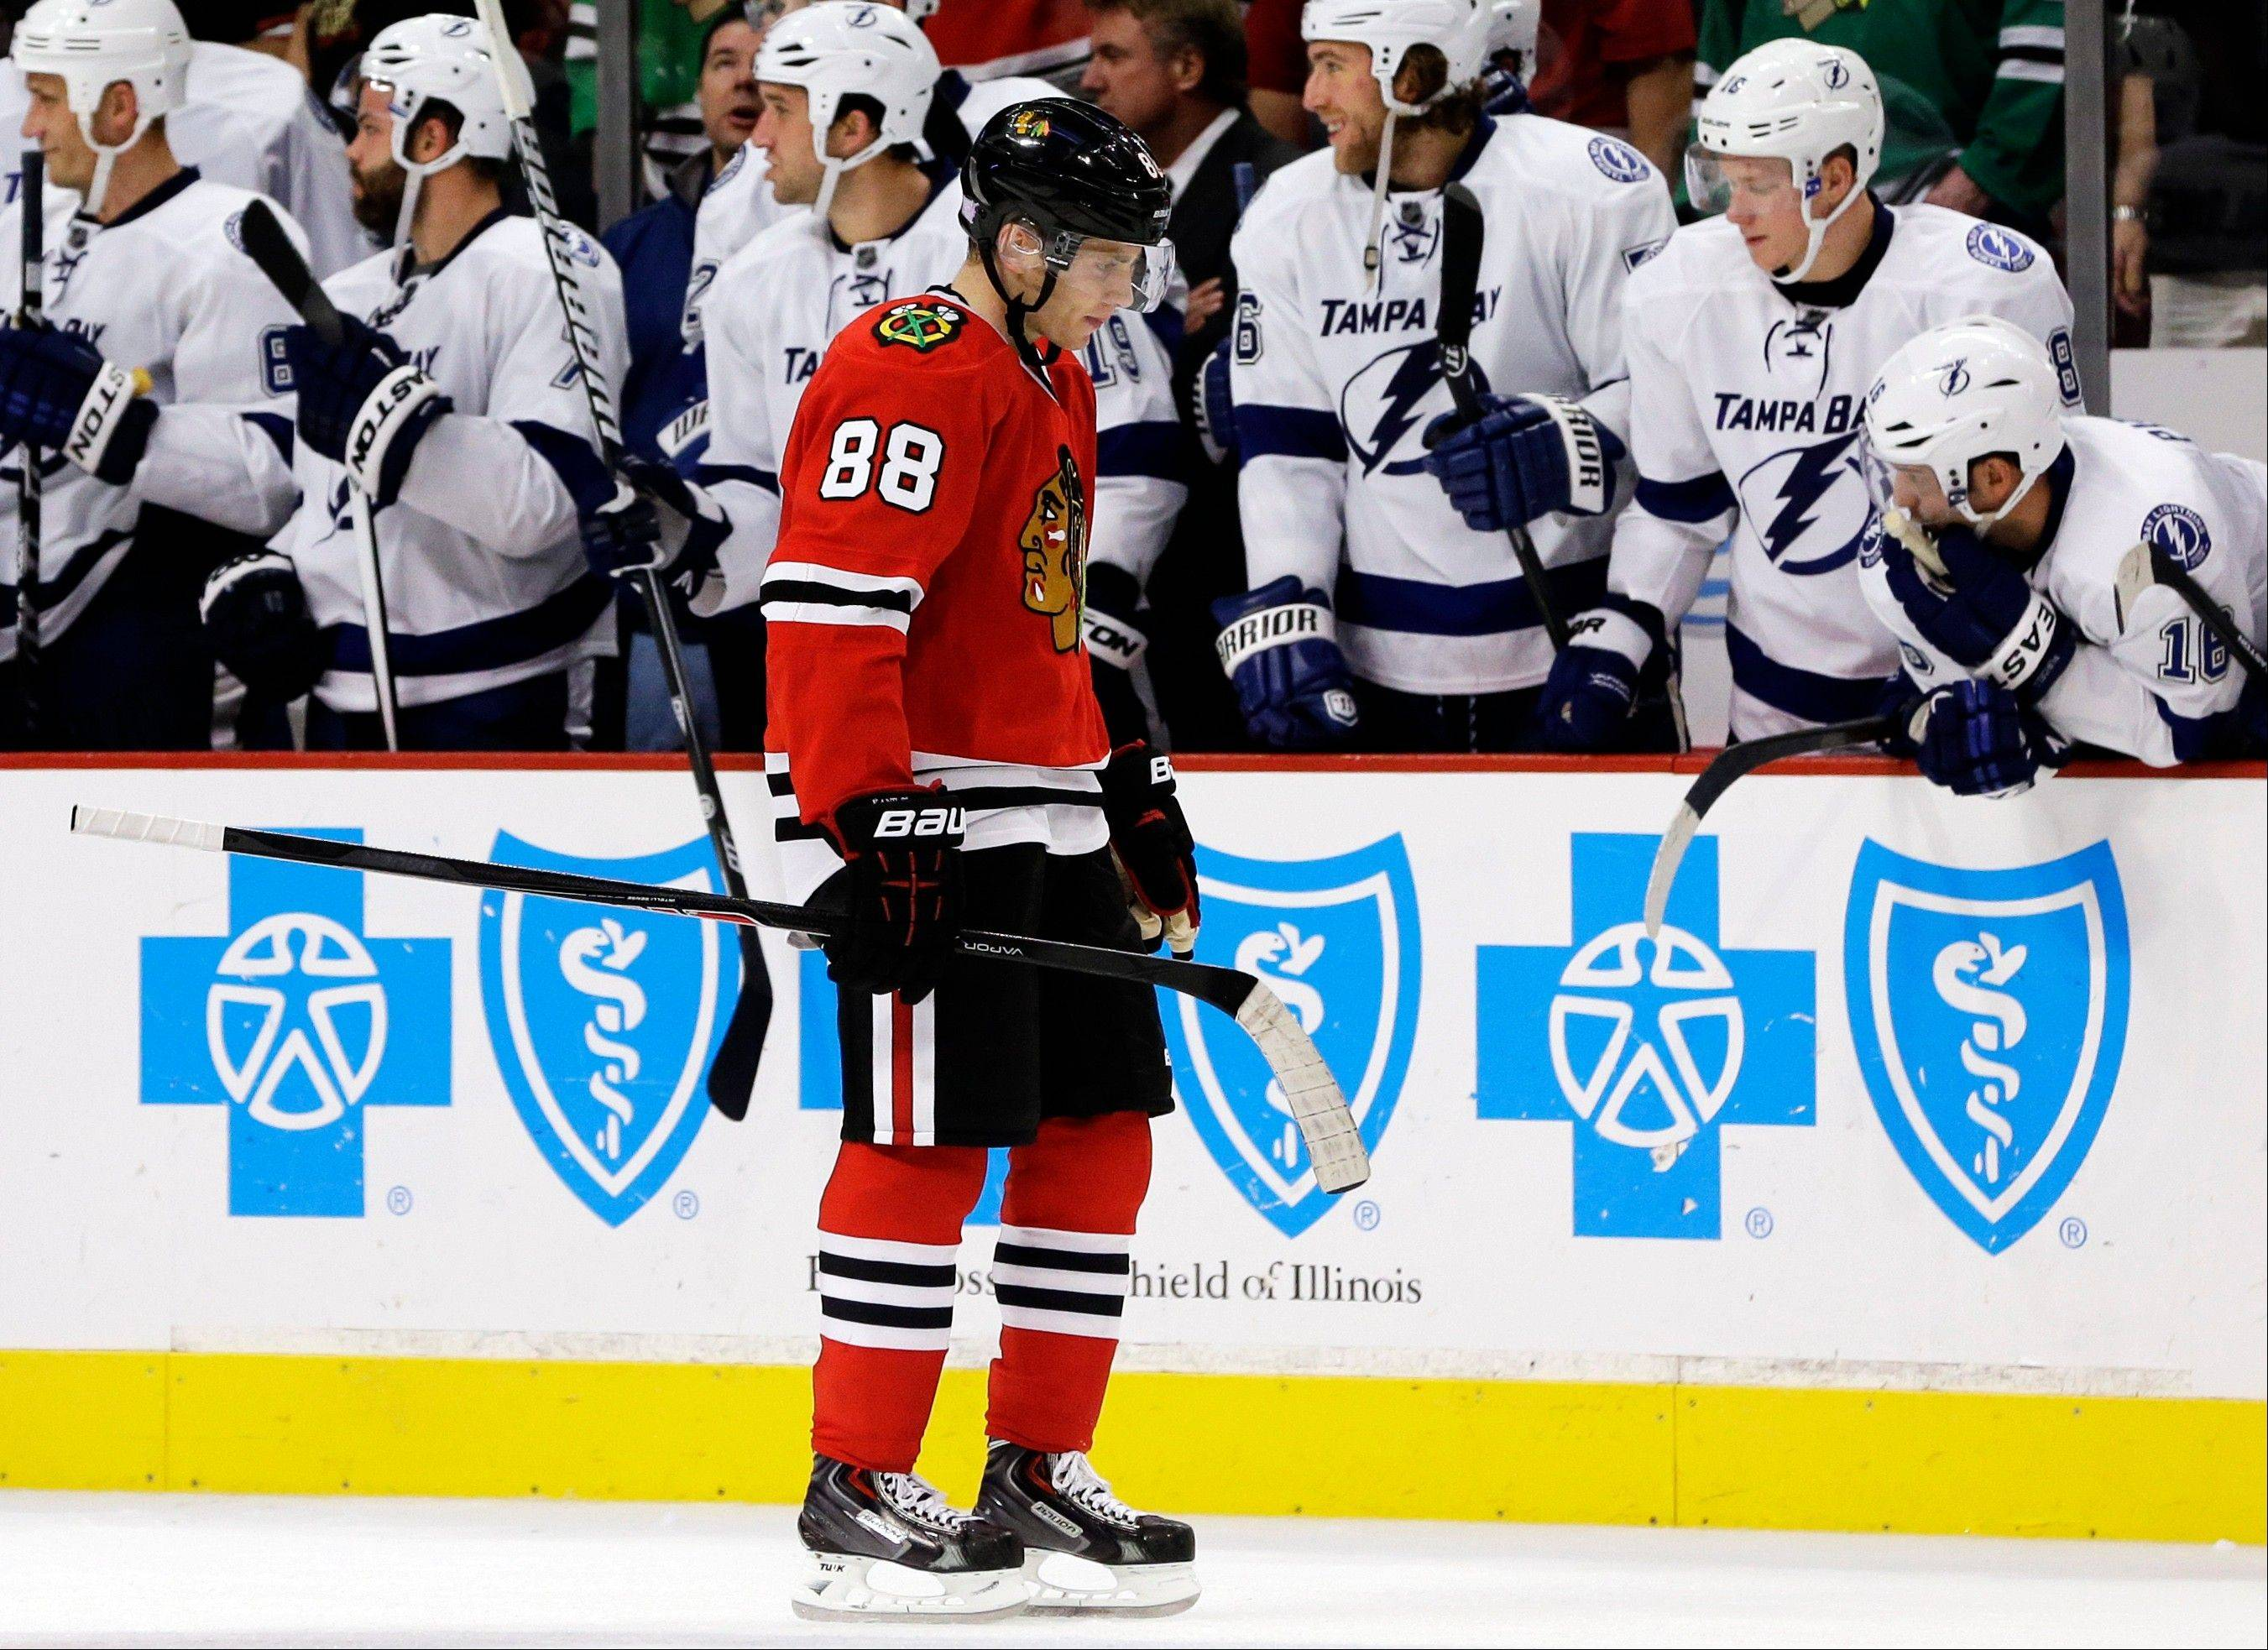 Chicago Blackhawks' Patrick Kane skates to bench after missing a shot against the Tampa Bay Lightning during the shootout of an NHL hockey game in Chicago, Saturday, Oct. 5, 2013. The Lightning won 3-2. (AP Photo/Nam Y. Huh)